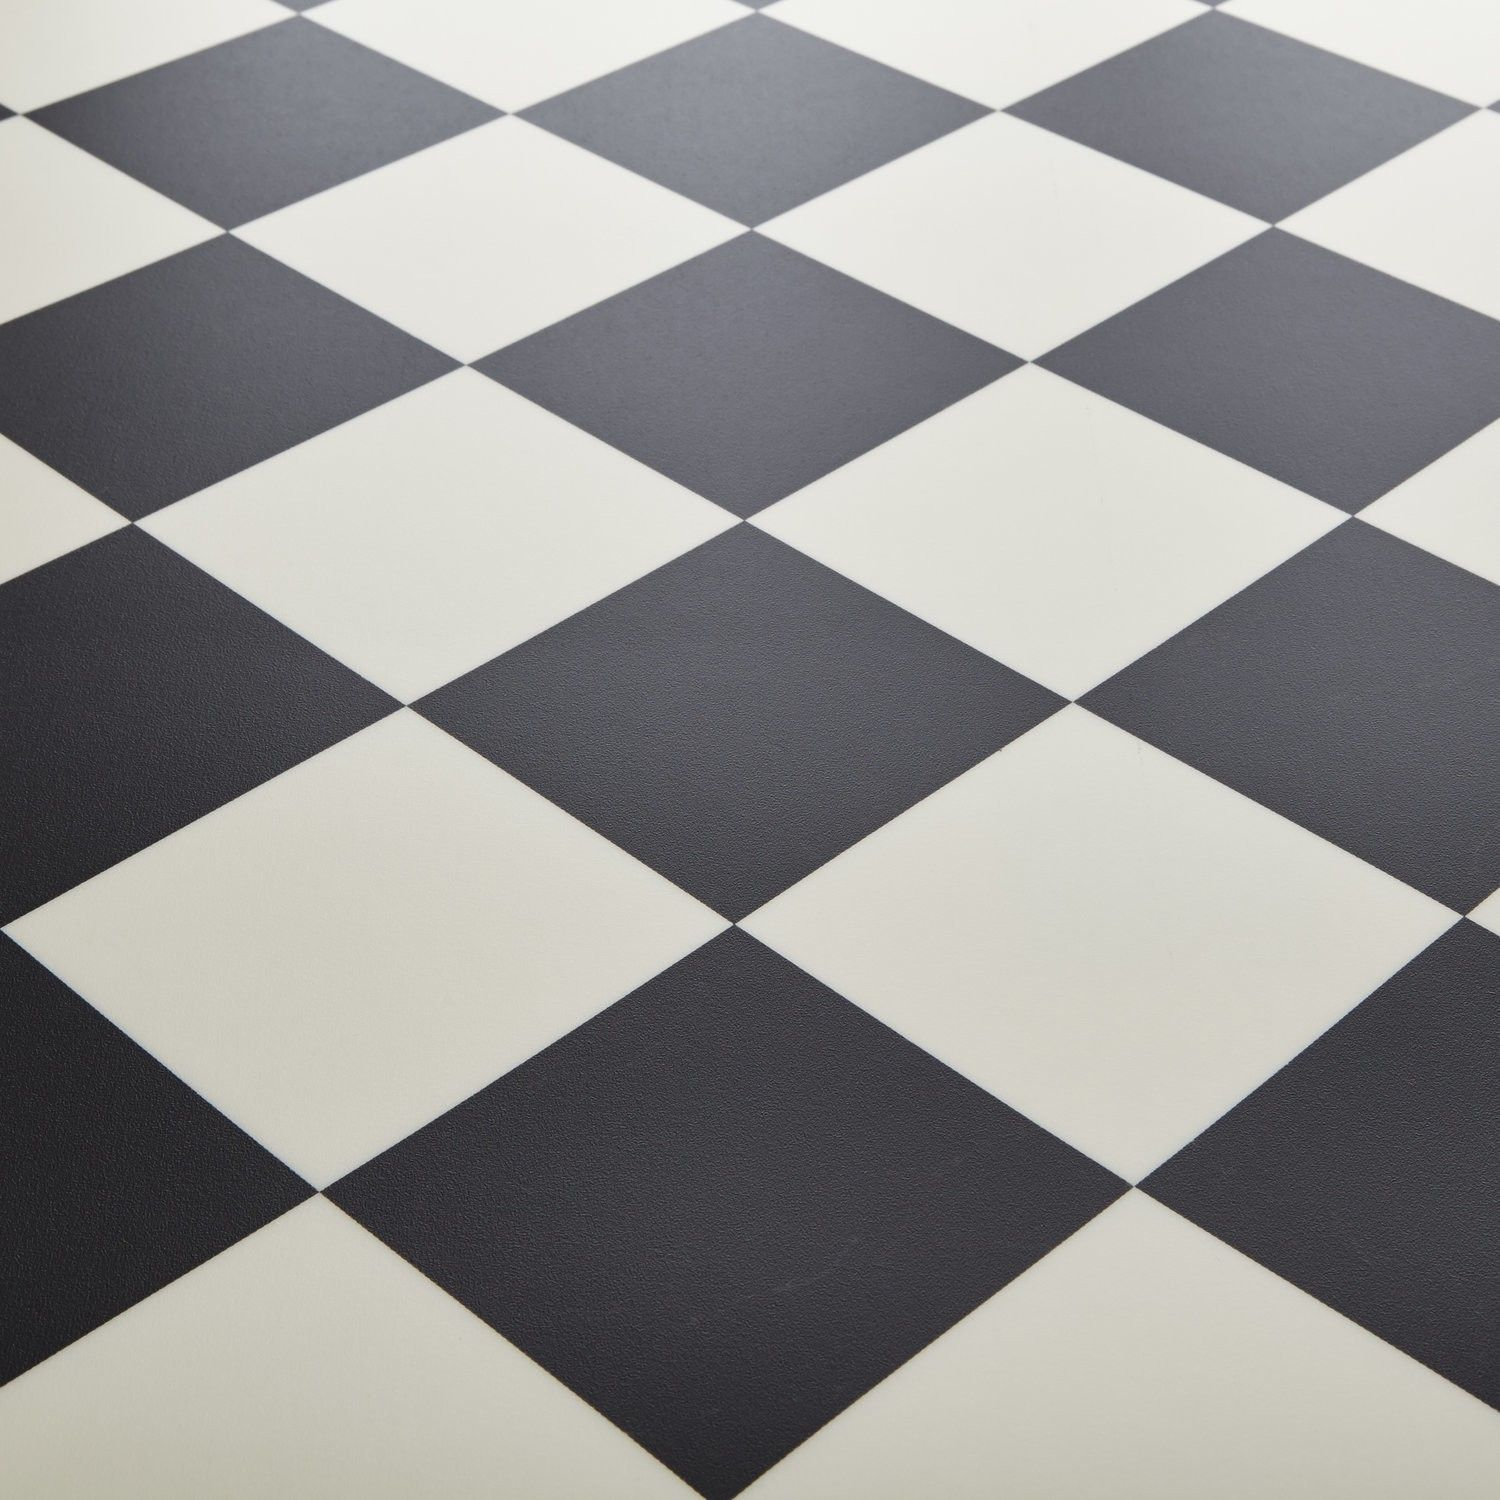 Ideas Black And White Checkered Vinyl Floor Tiles Uk Floor Decoration With Regard To Dimensions 150 Vinyl Flooring Kitchen Vinyl Flooring White Vinyl Flooring